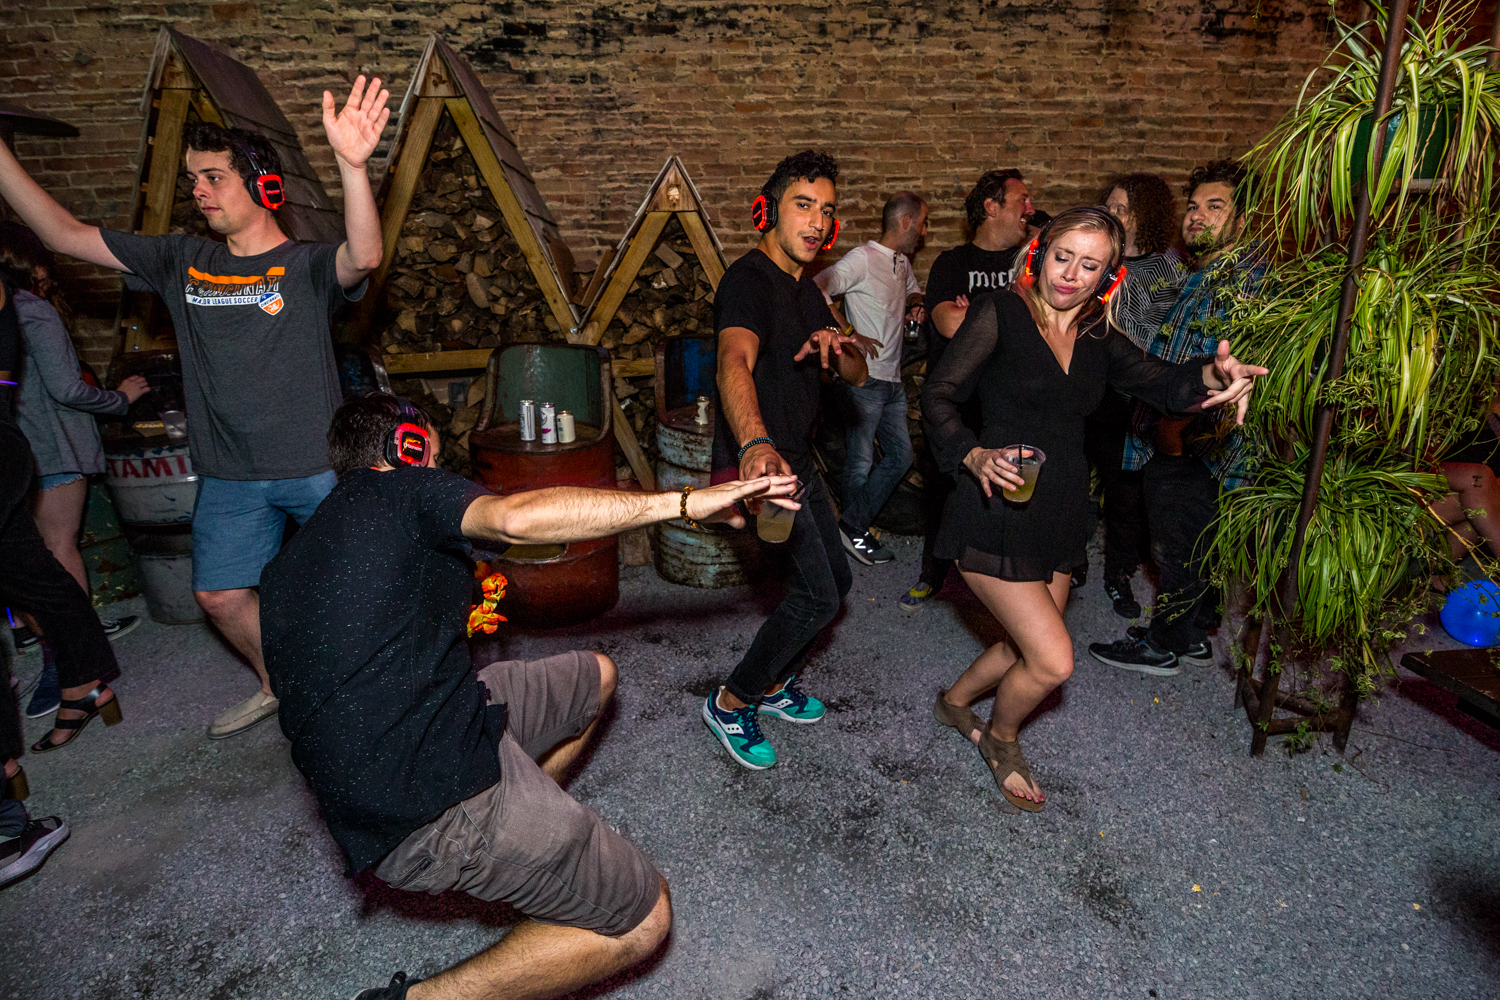 Sometimes you just have to grab a drink, throw on a pair of headphones, and dance Saturday night way. Casual Socialite threw a silent disco at Mecca on Saturday, September 7. The party raged until 2 AM on 15th Street in OTR. / Image: Catherine Viox // Published: 9.8.19